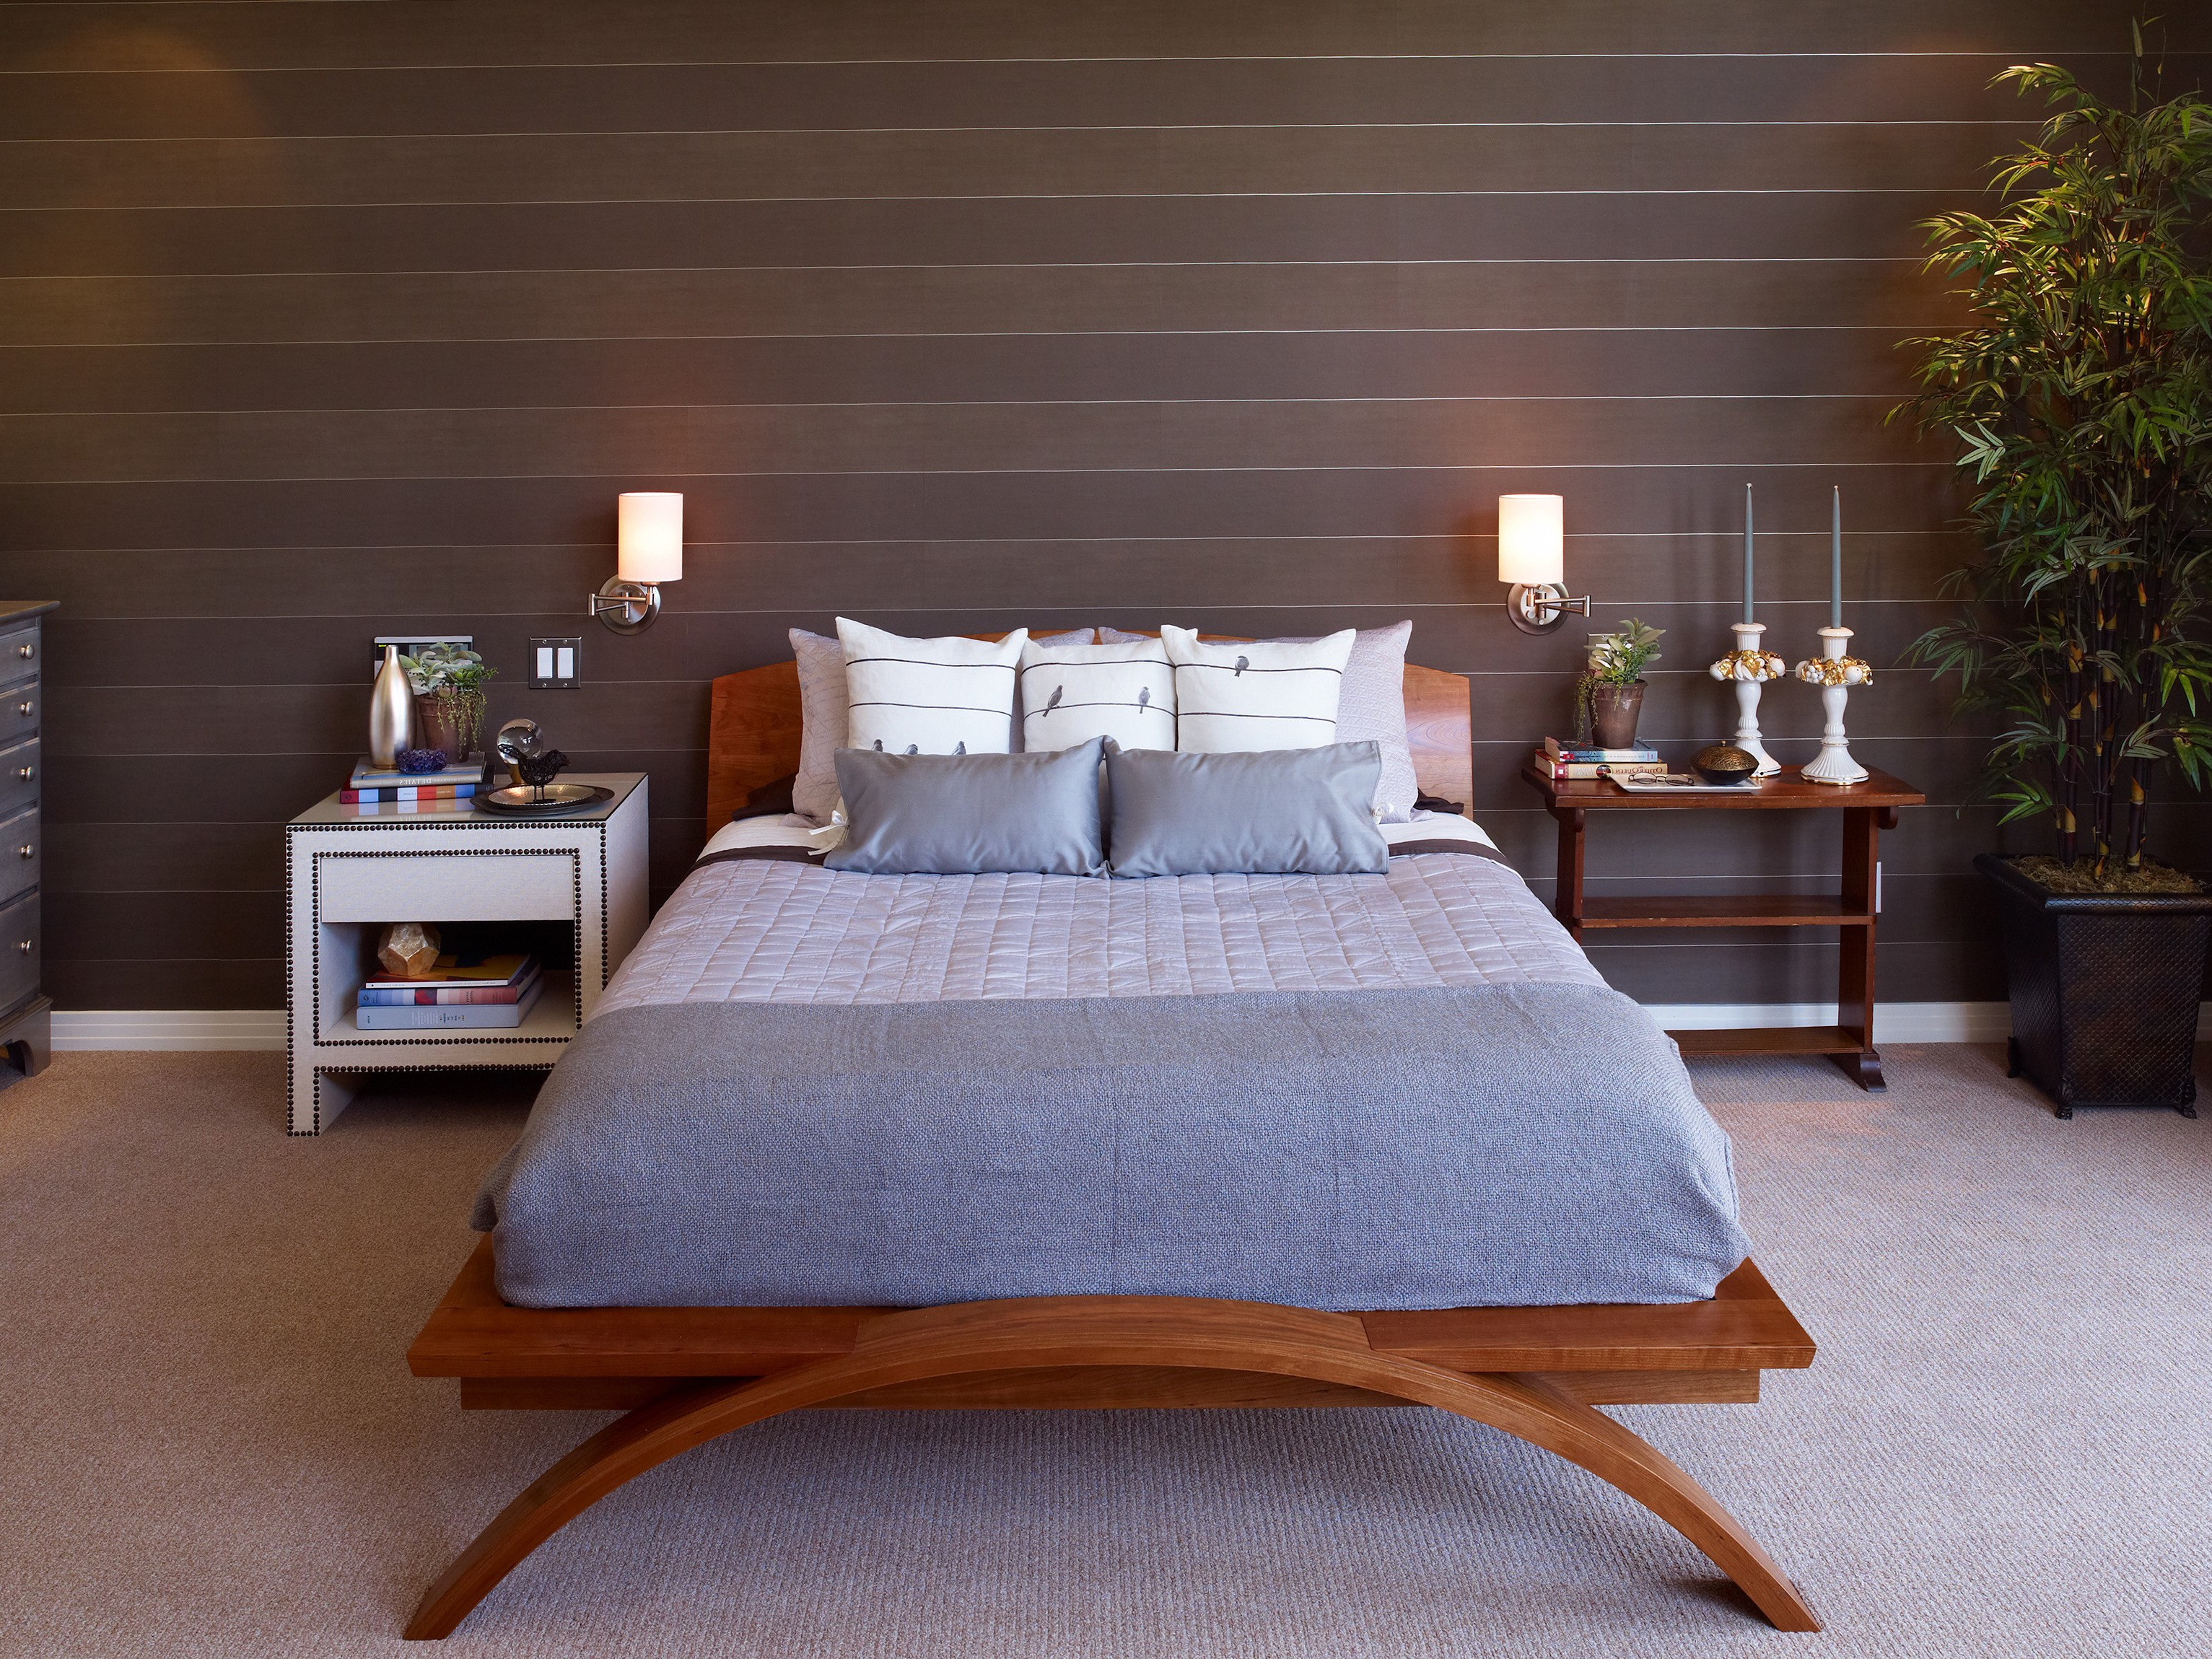 Modern Bedroom With Minimalist Wall Lamp (View 3 of 13)